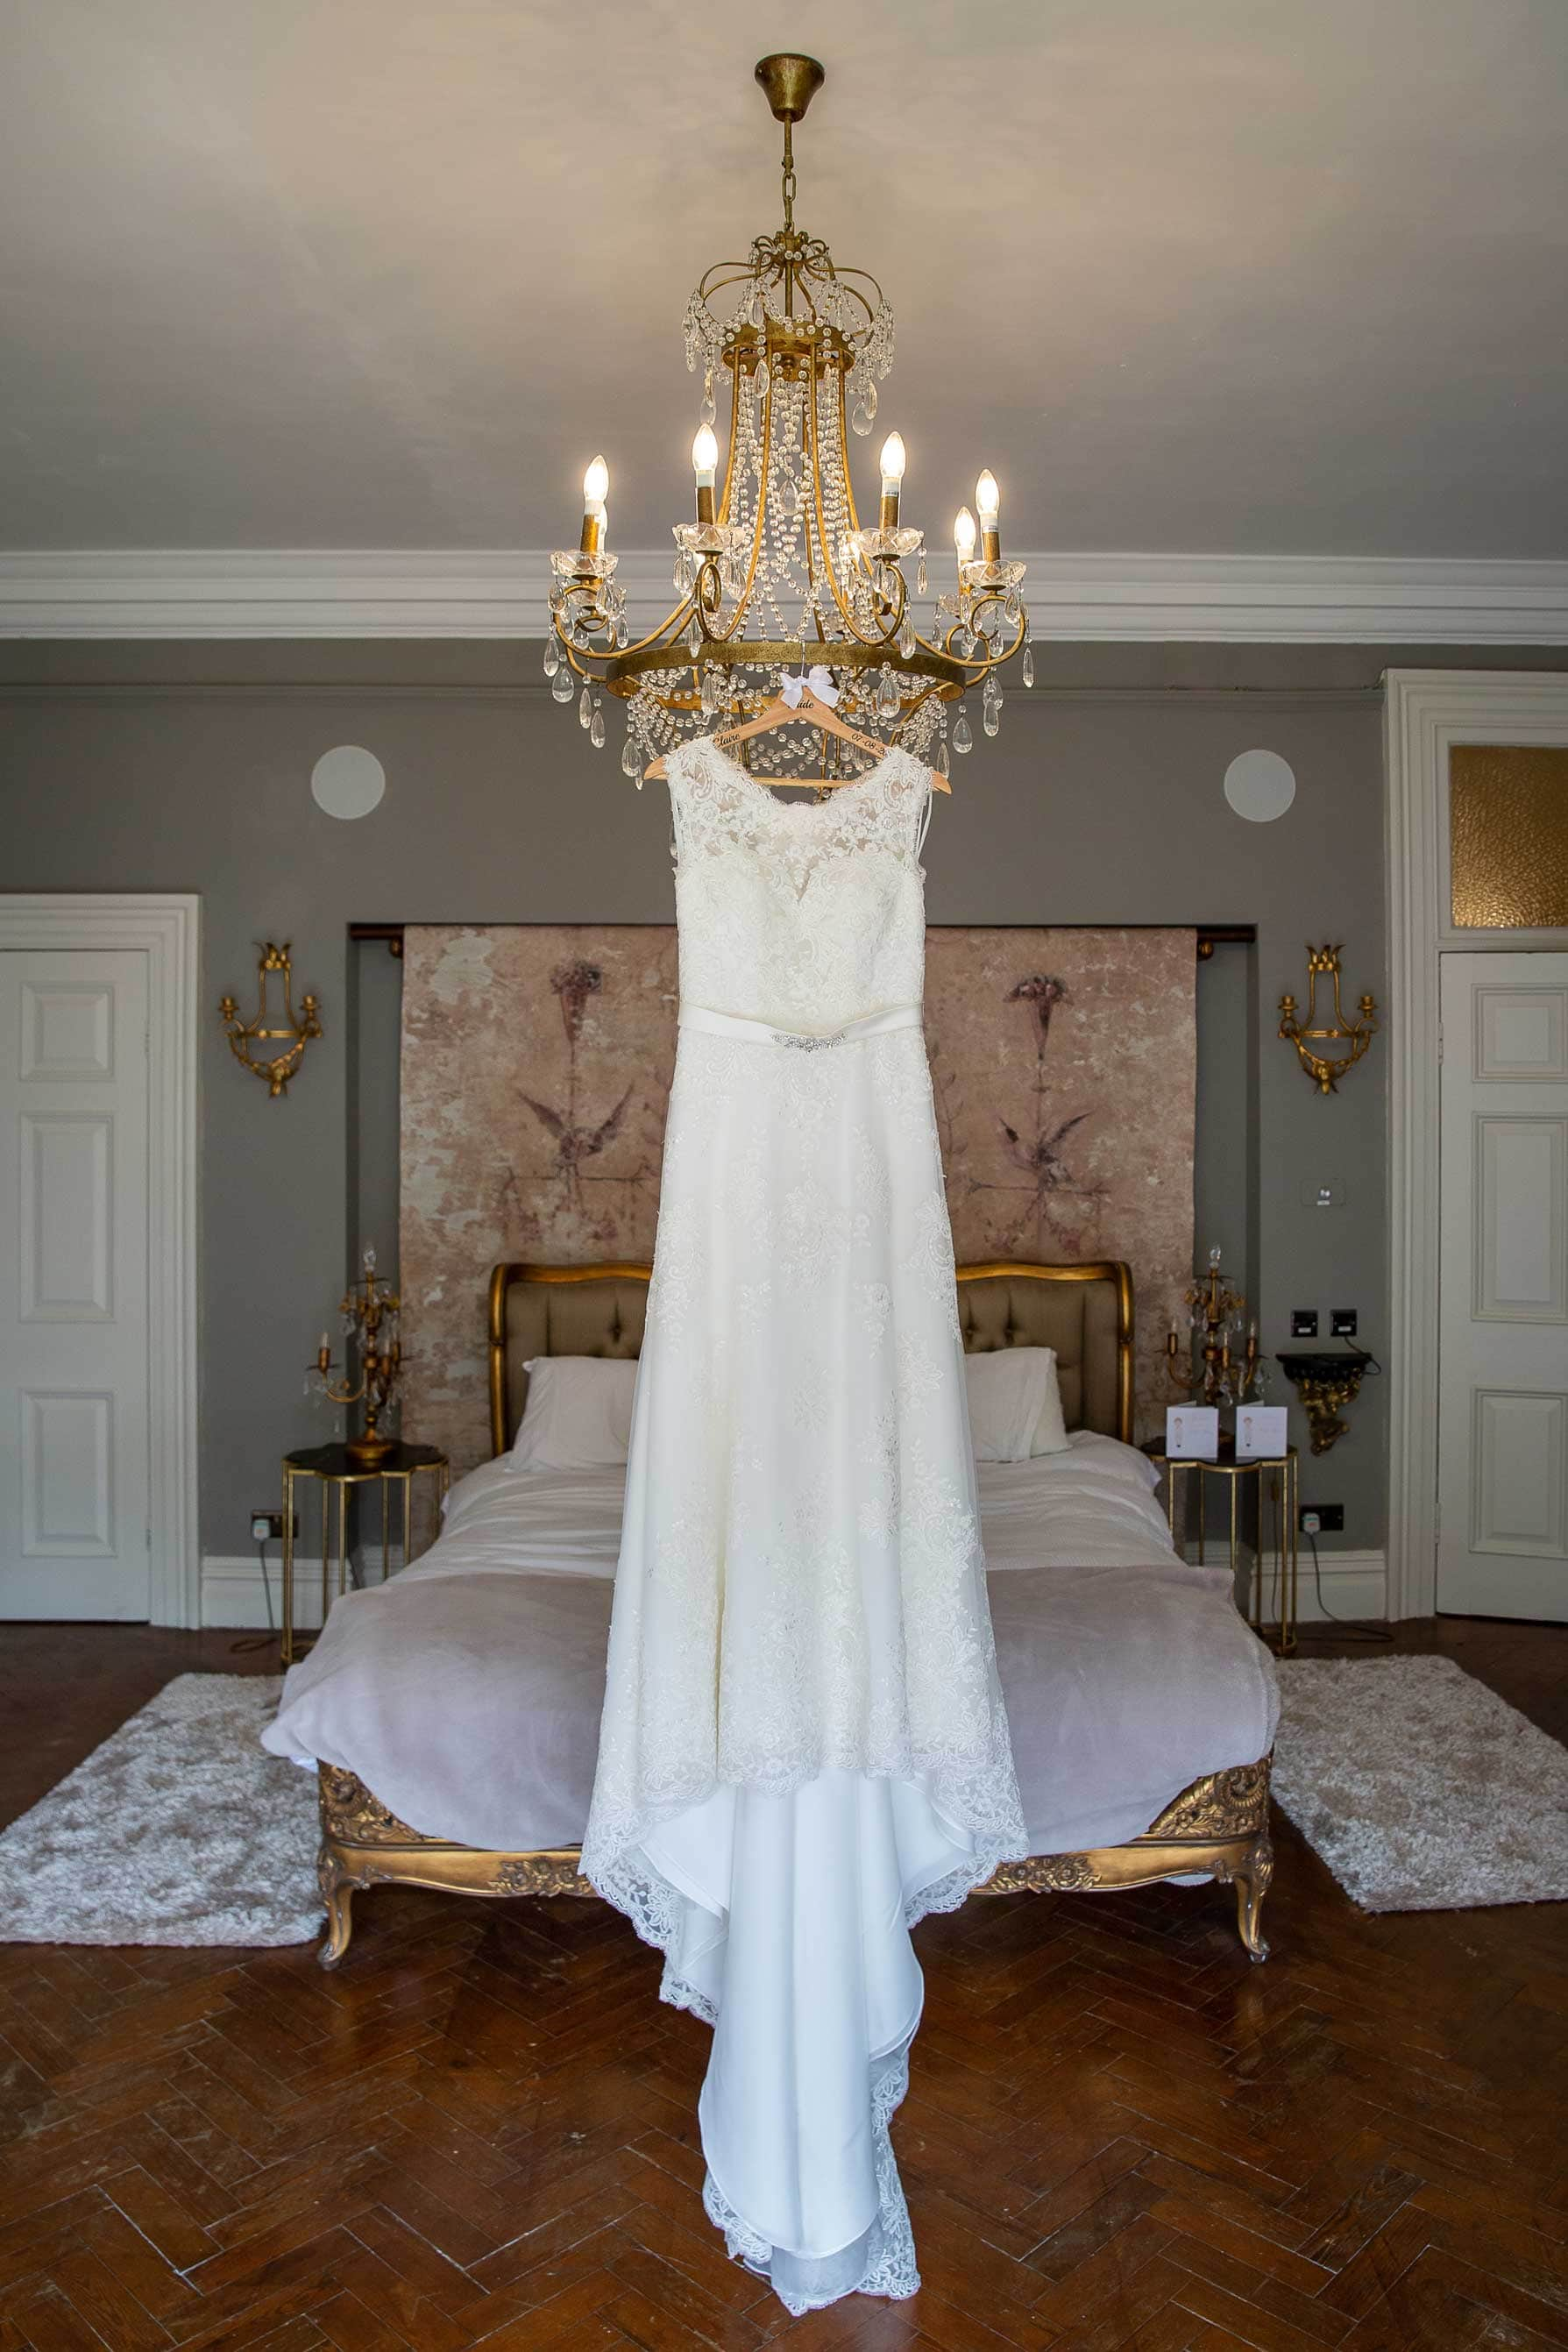 Wedding dress hanging up in Ellingham hall